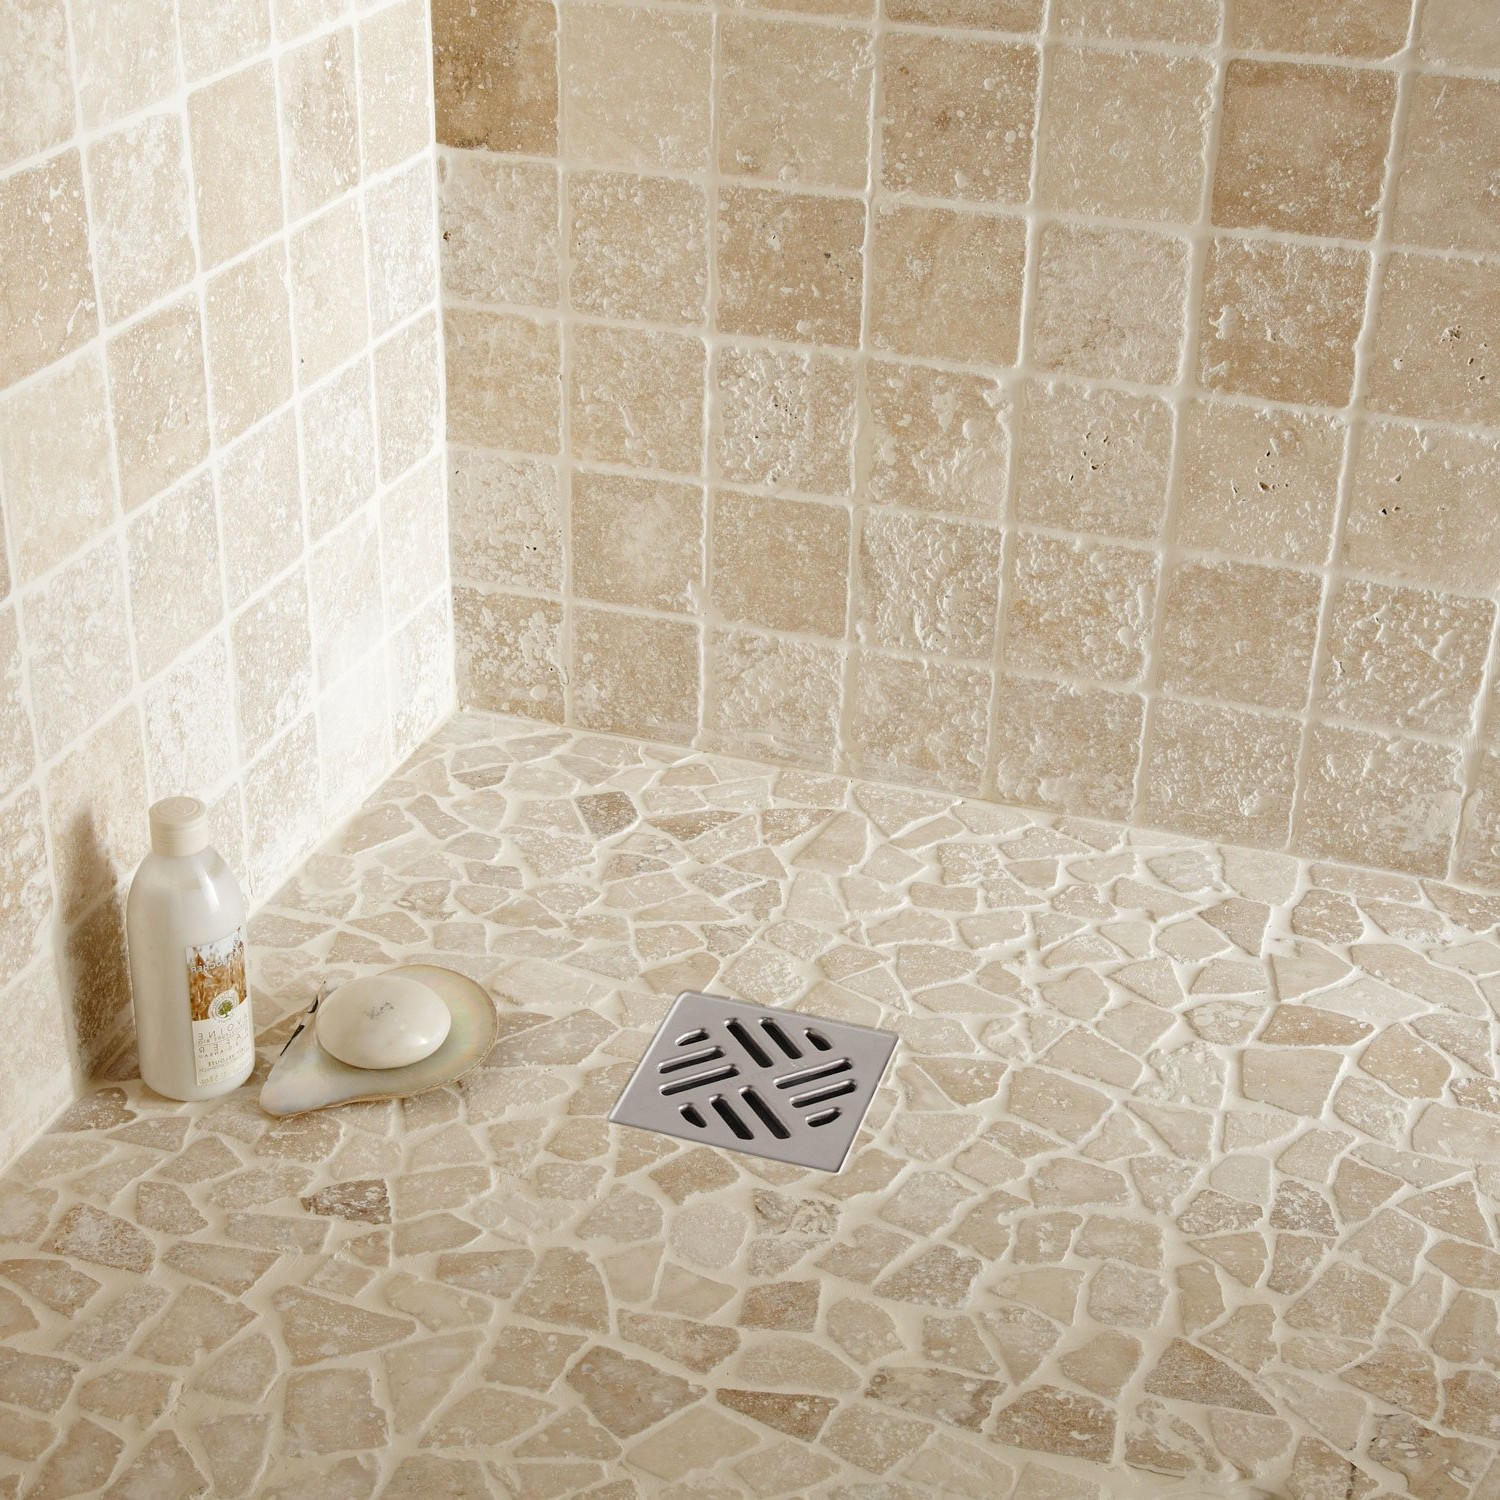 Carrelage travertin salle de bain leroy merlin carrelage for Carrelage marazzi salle de bain